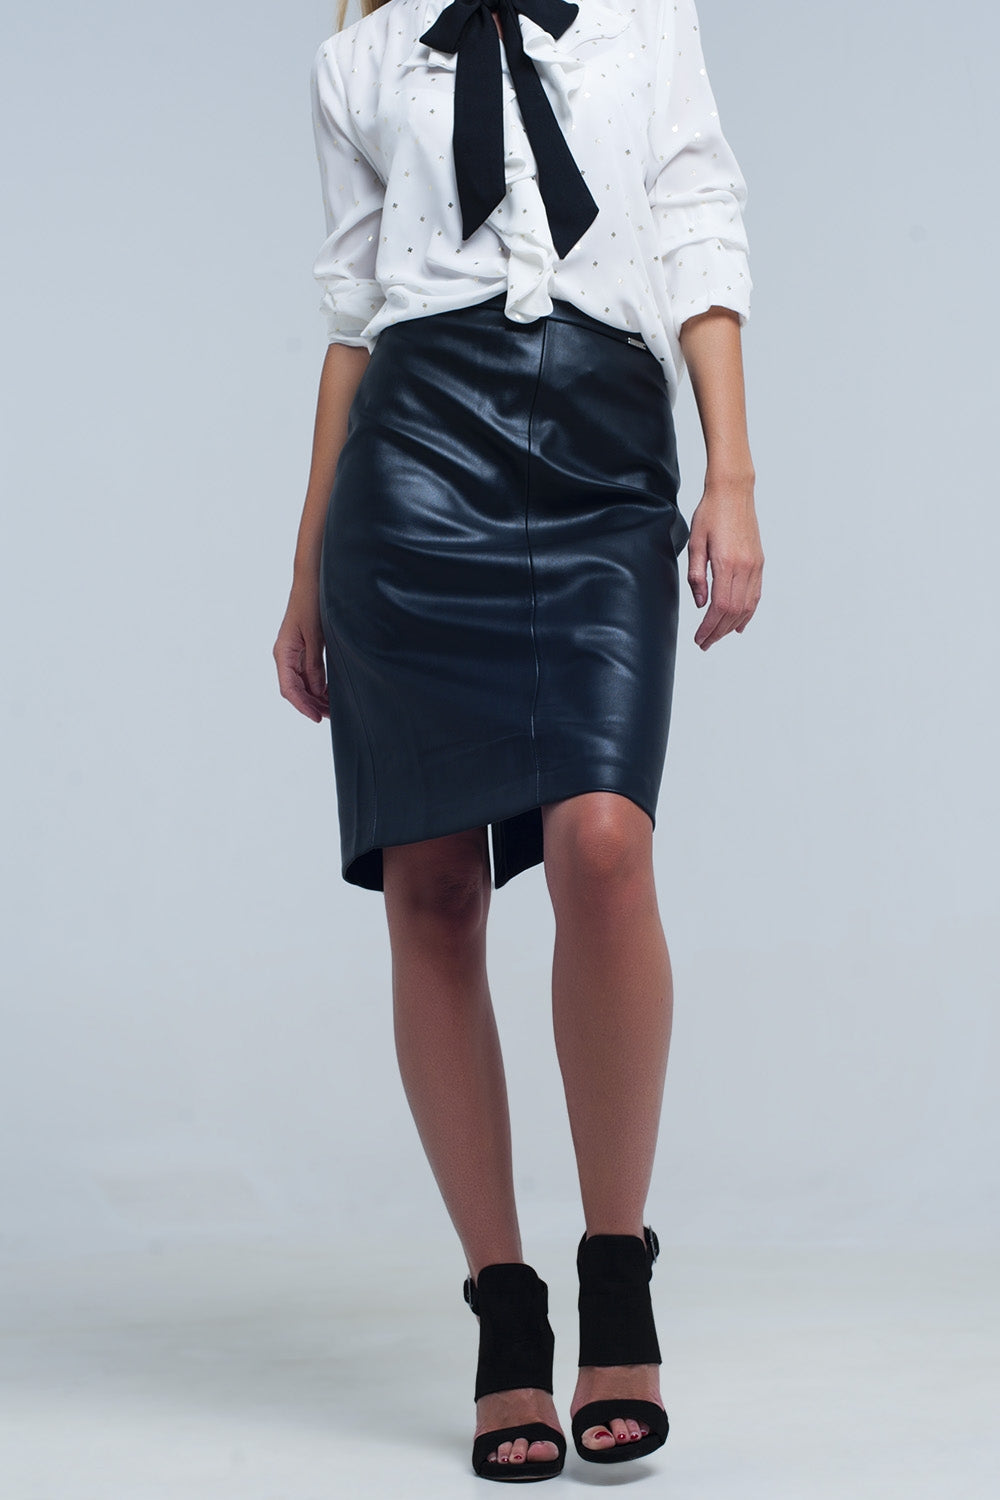 Q2 Black midi straight faux leather skirt - KATANA FASHION BOUTIQUE